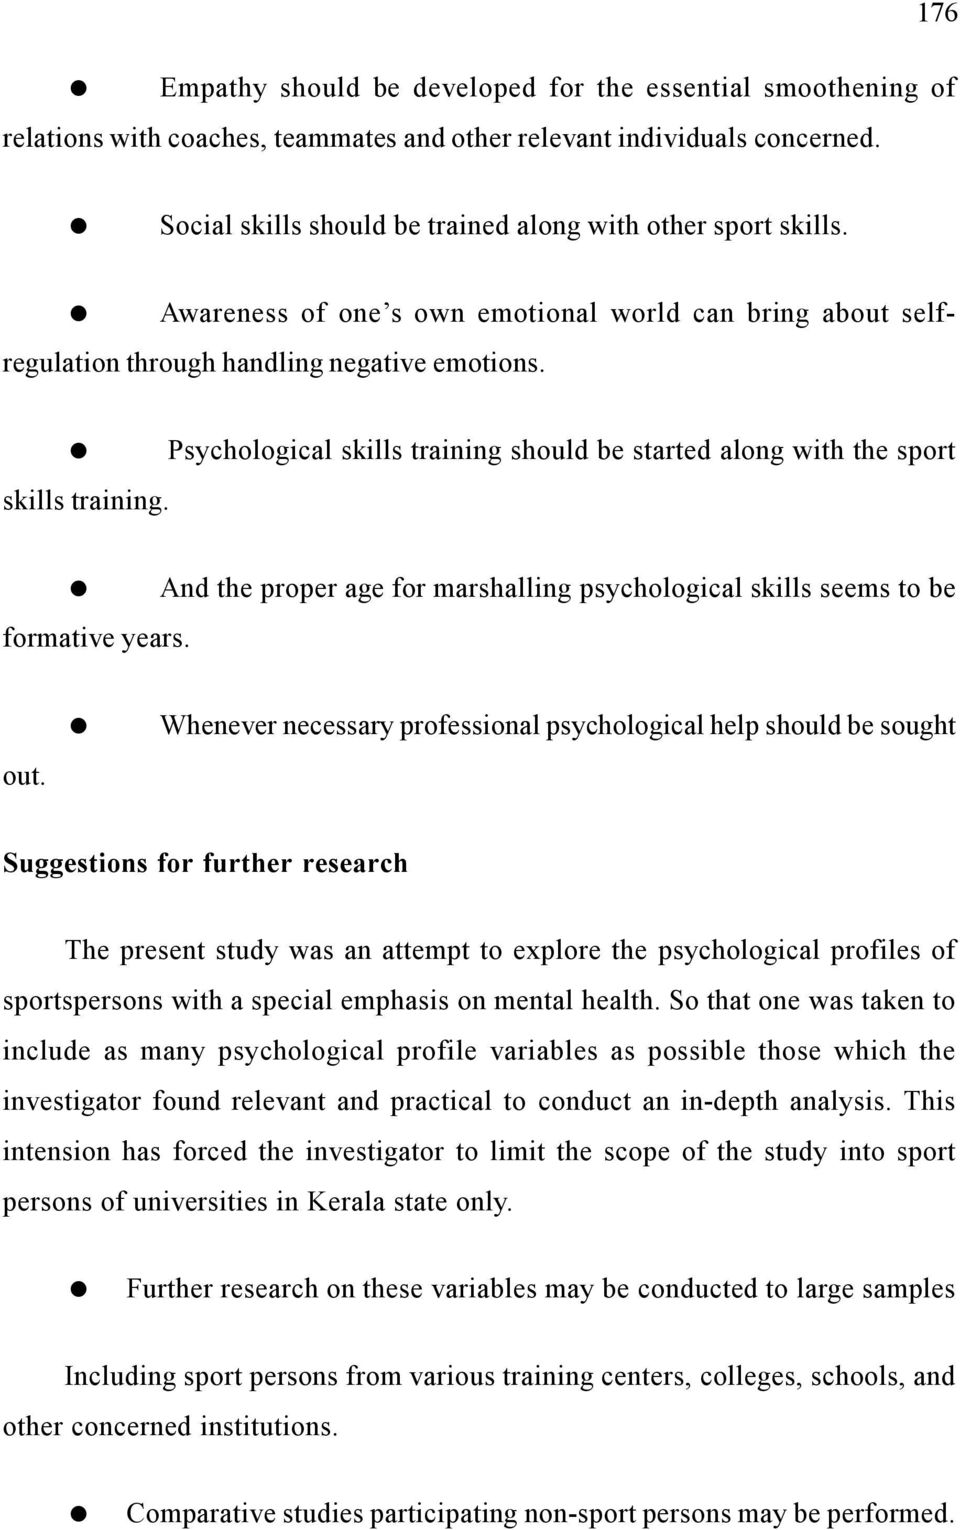 Psychological skills training should be started along with the sport skills training. formative years. And the proper age for marshalling psychological skills seems to be out.